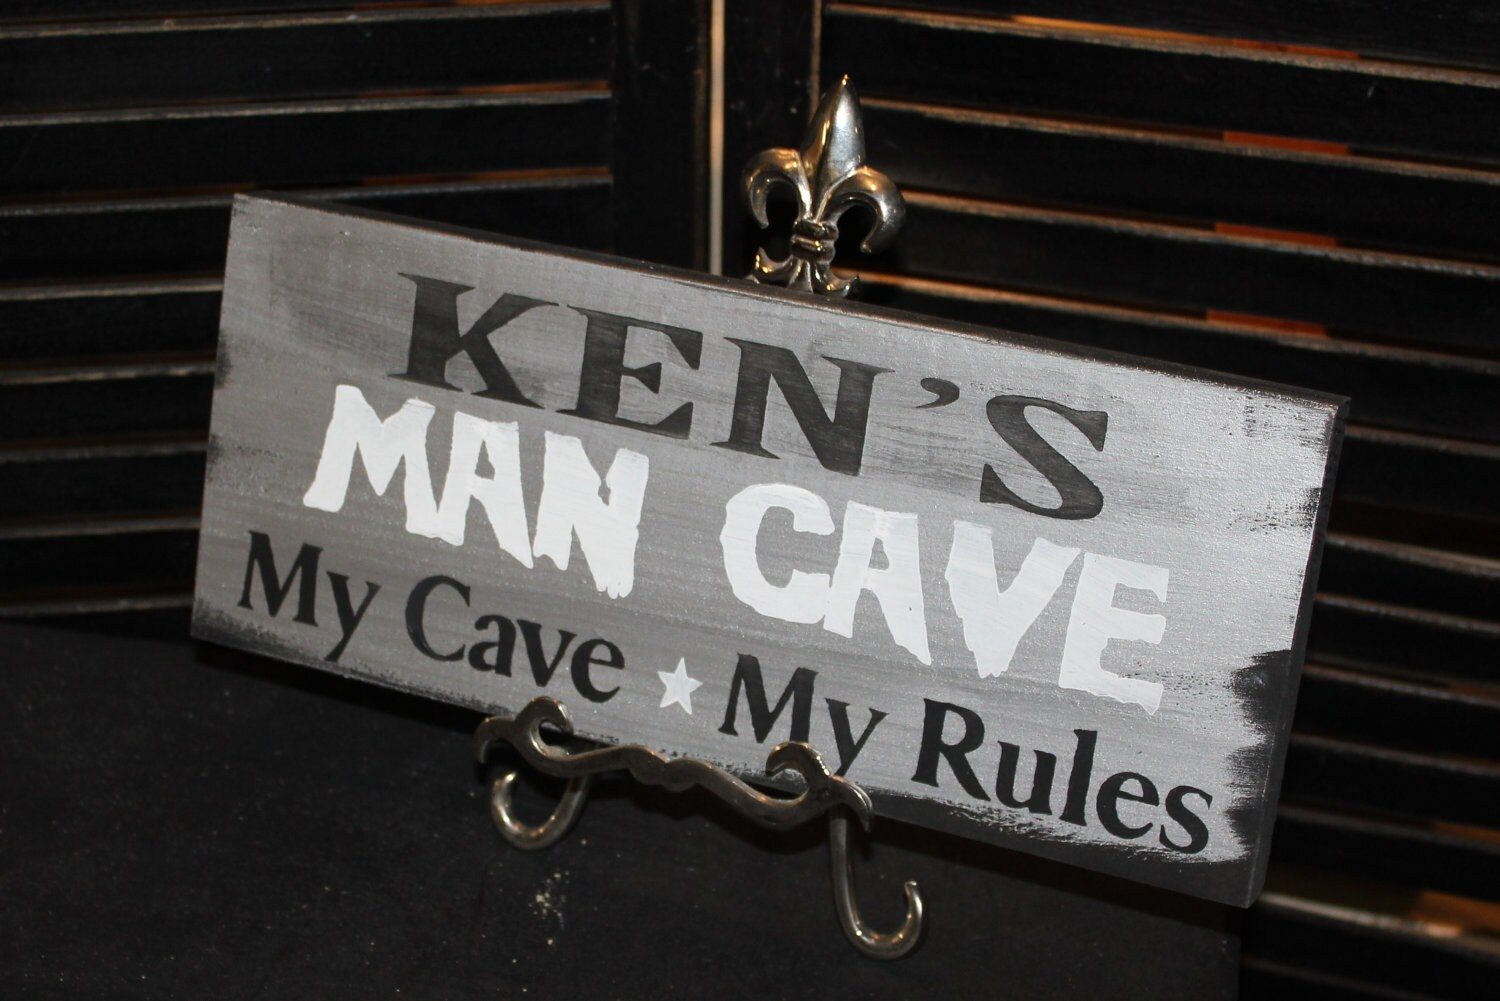 Man Cave Oakland : Man cave oakland raiders by thegingerbreadshoppe on etsy